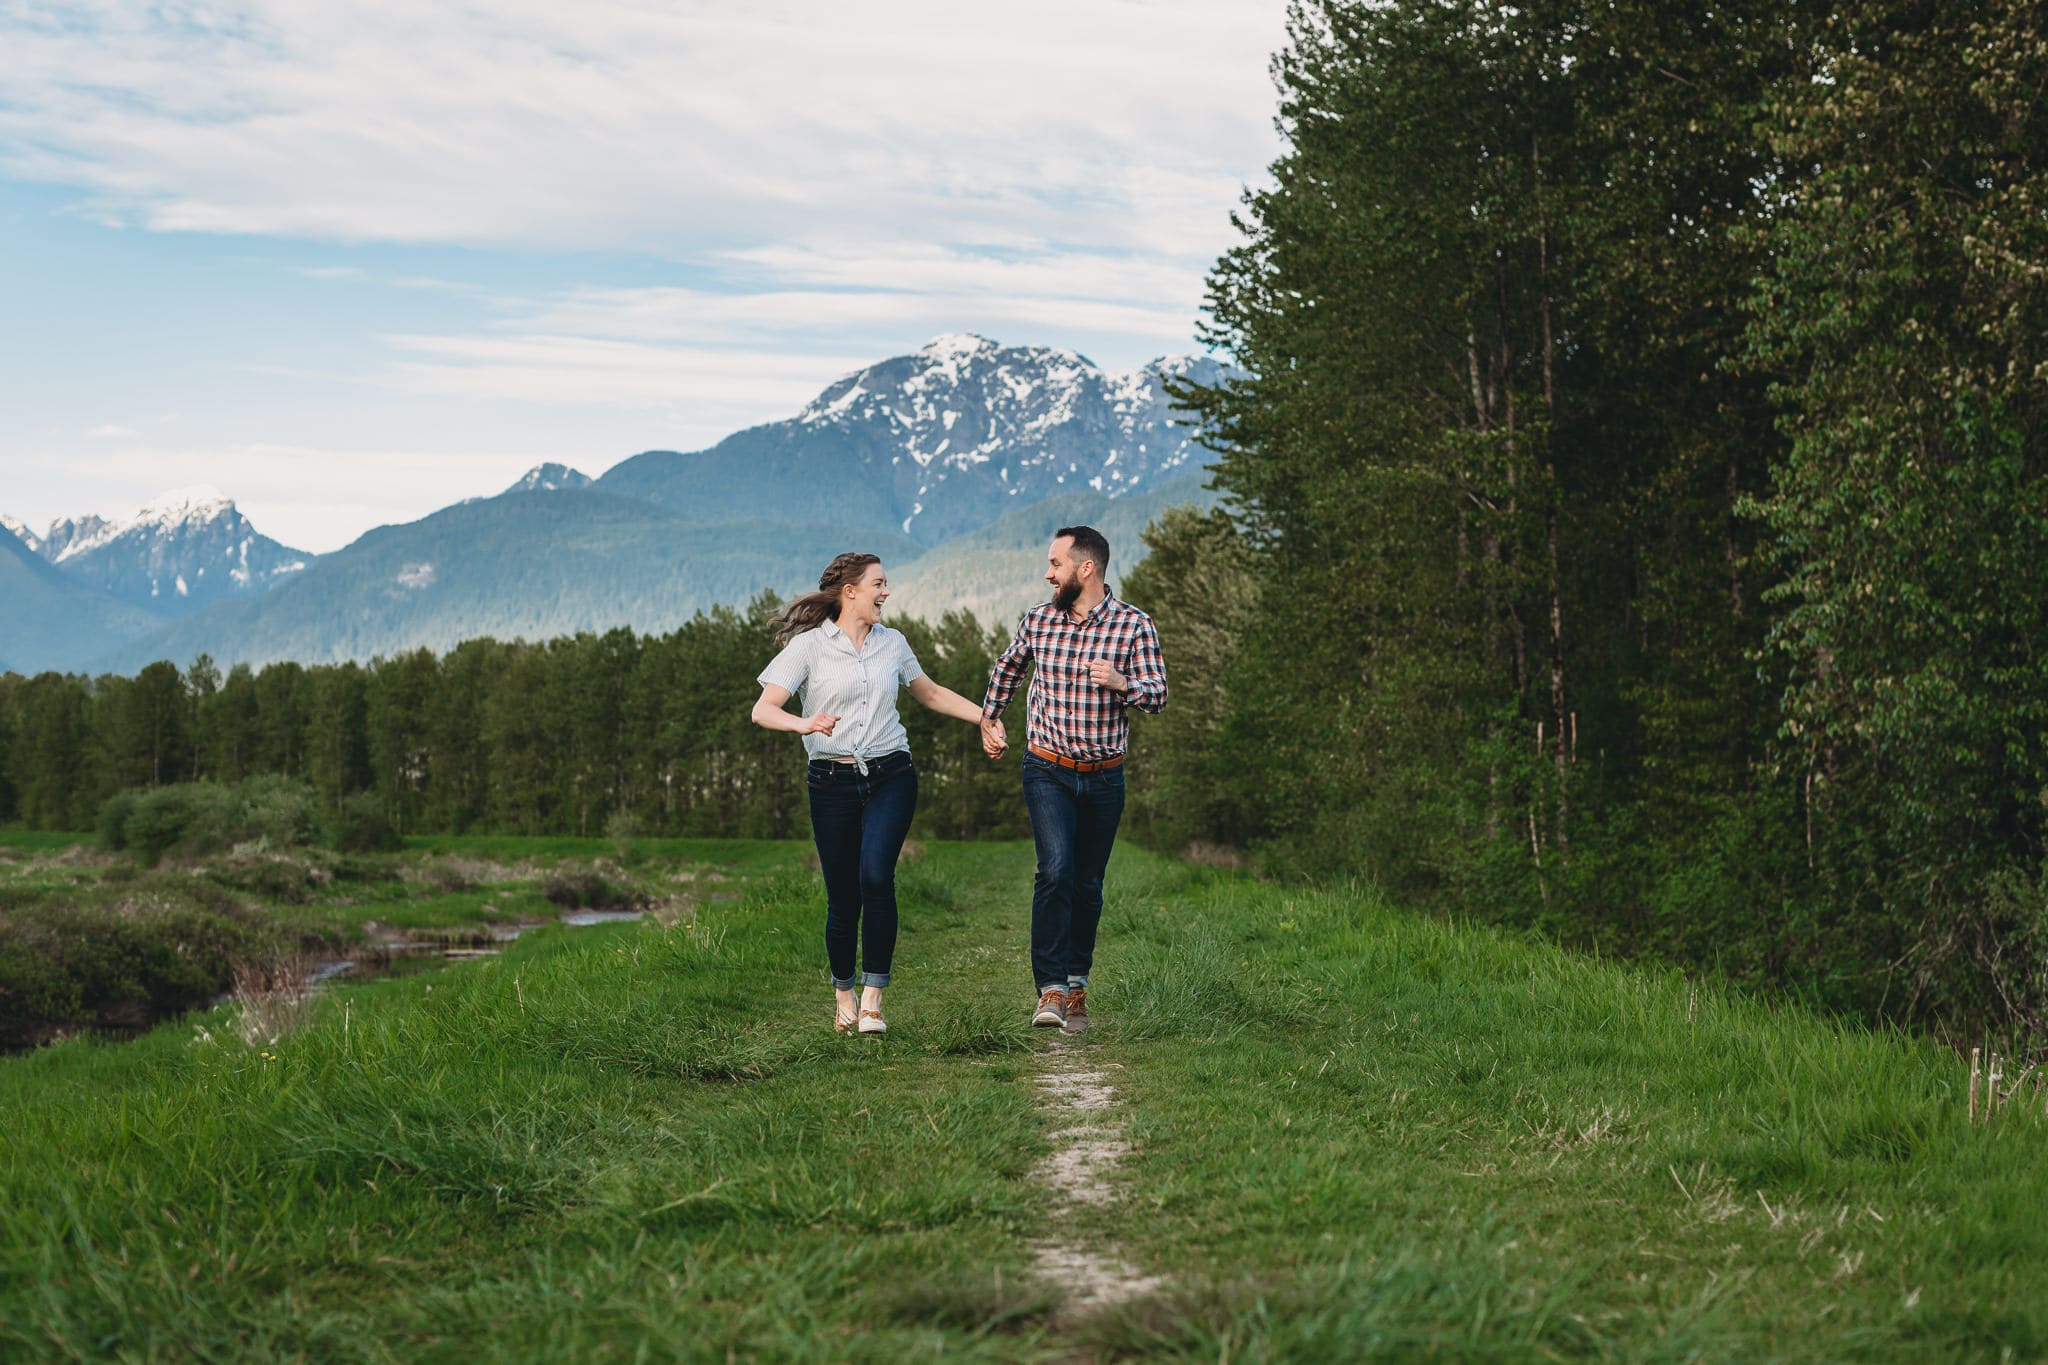 fun and casual couples session at pitt lake in pitt meadows